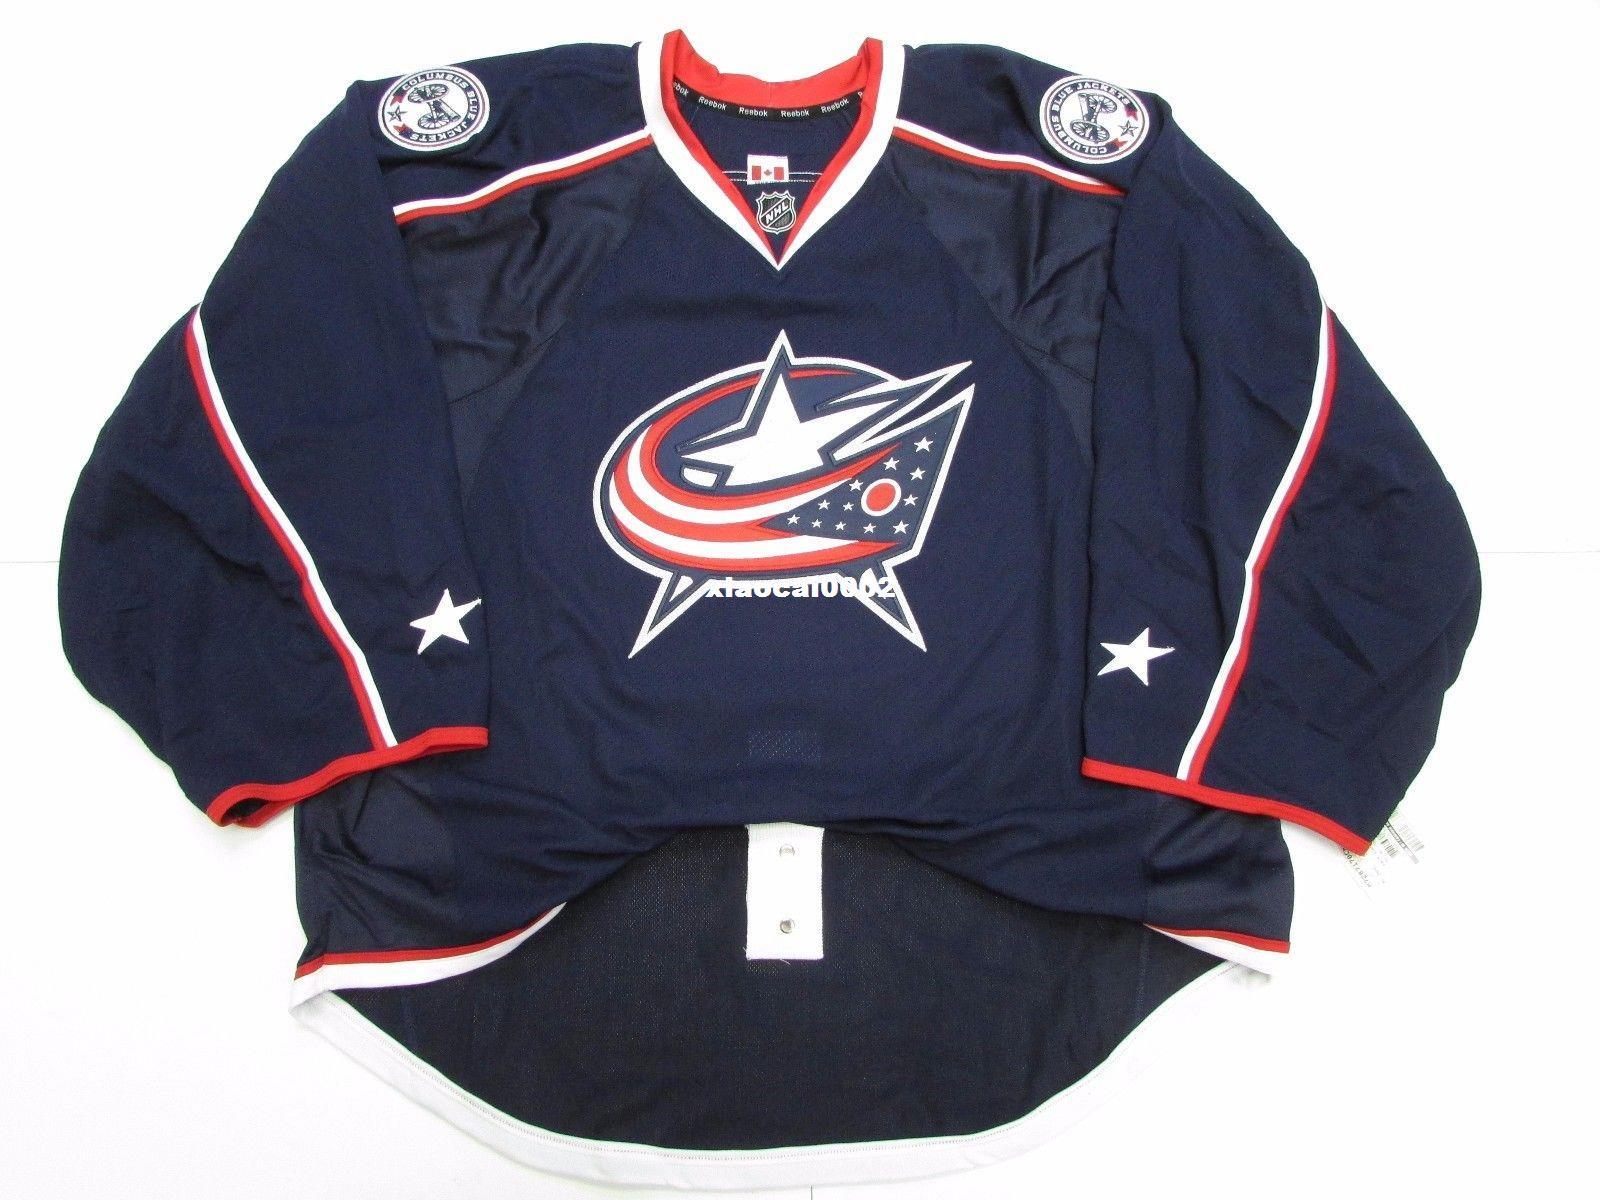 new style f9f26 4cec3 Cheap Custom COLUMBUS BLUE JACKETS AUTHENTIC NEW HOME EDGE JERSEY GOALIE  CUT 60 Mens Stitched Personalized hockey Jerseys